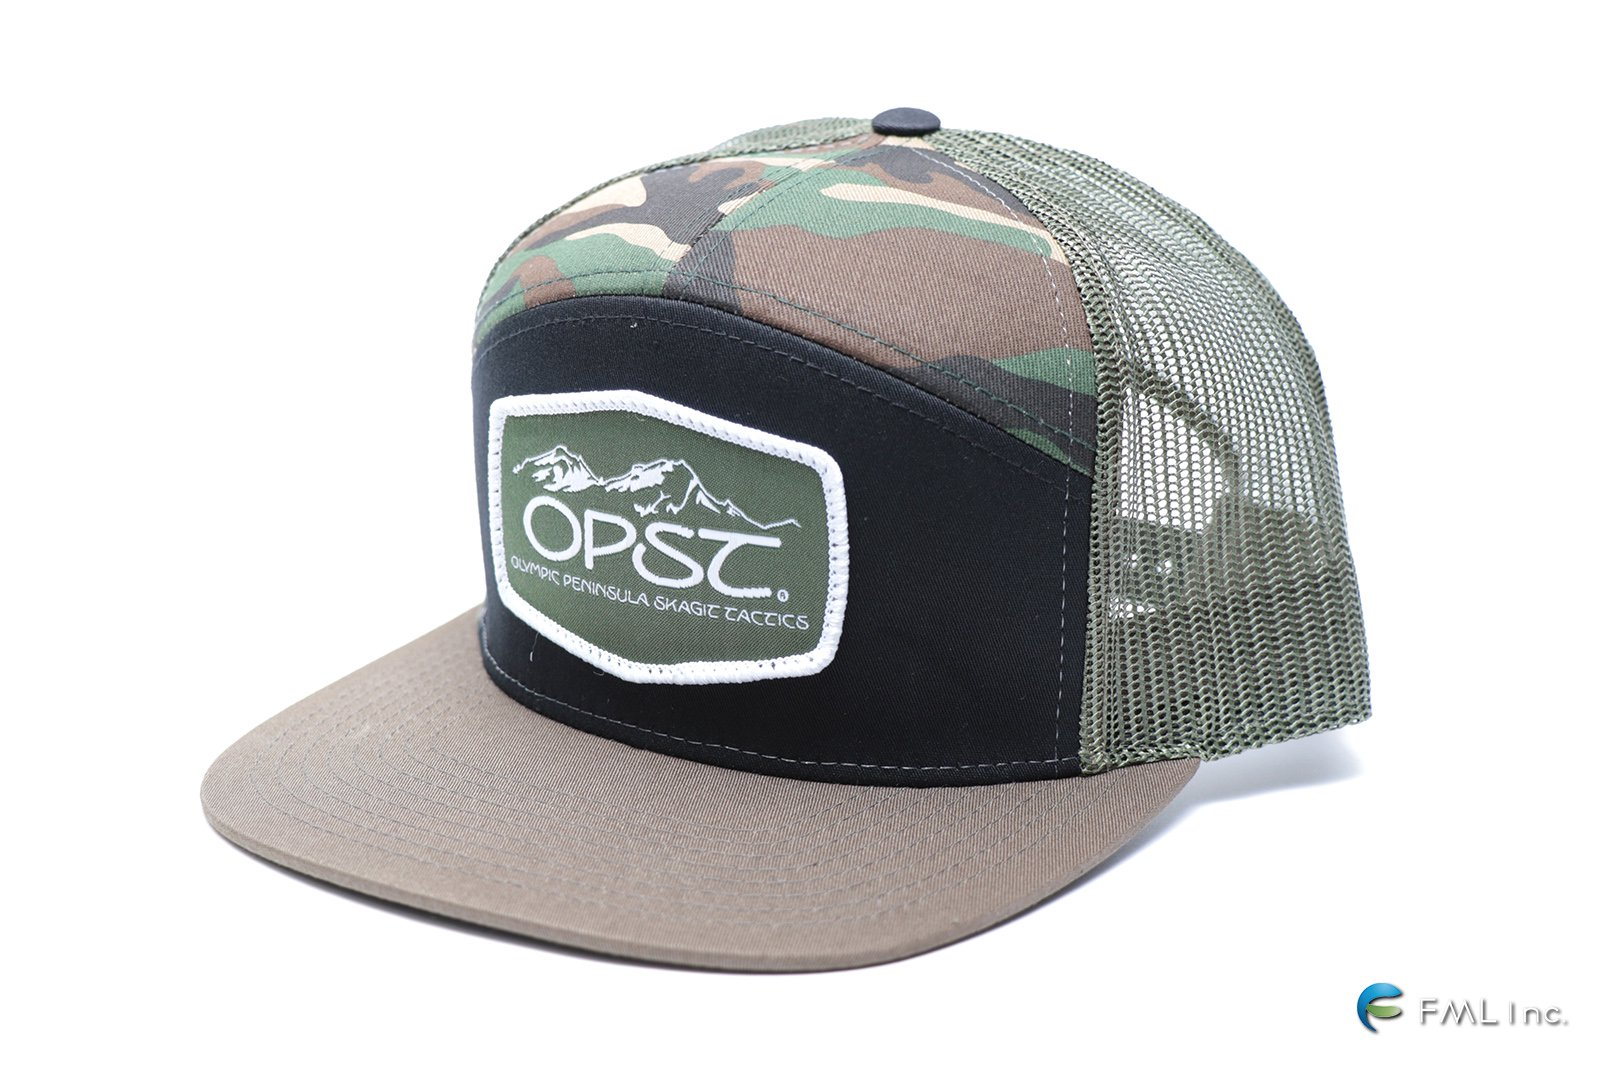 <img class='new_mark_img1' src='//img.shop-pro.jp/img/new/icons5.gif' style='border:none;display:inline;margin:0px;padding:0px;width:auto;' />OPST 7 Panel Camo Trucker Hat -Snapback